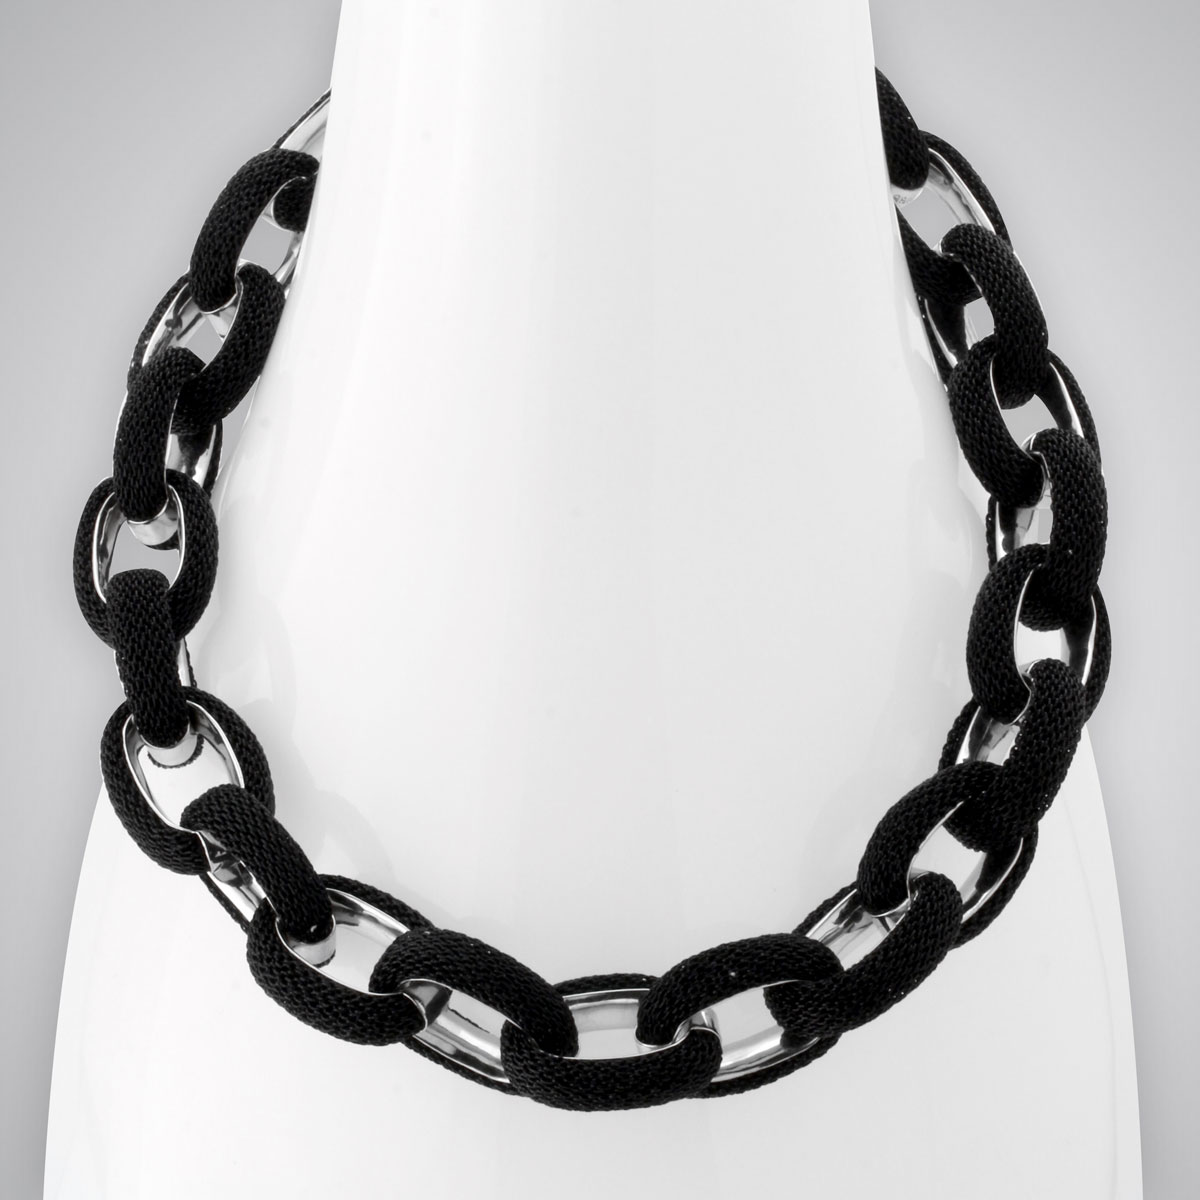 343924-Adami & Martucci Necklace